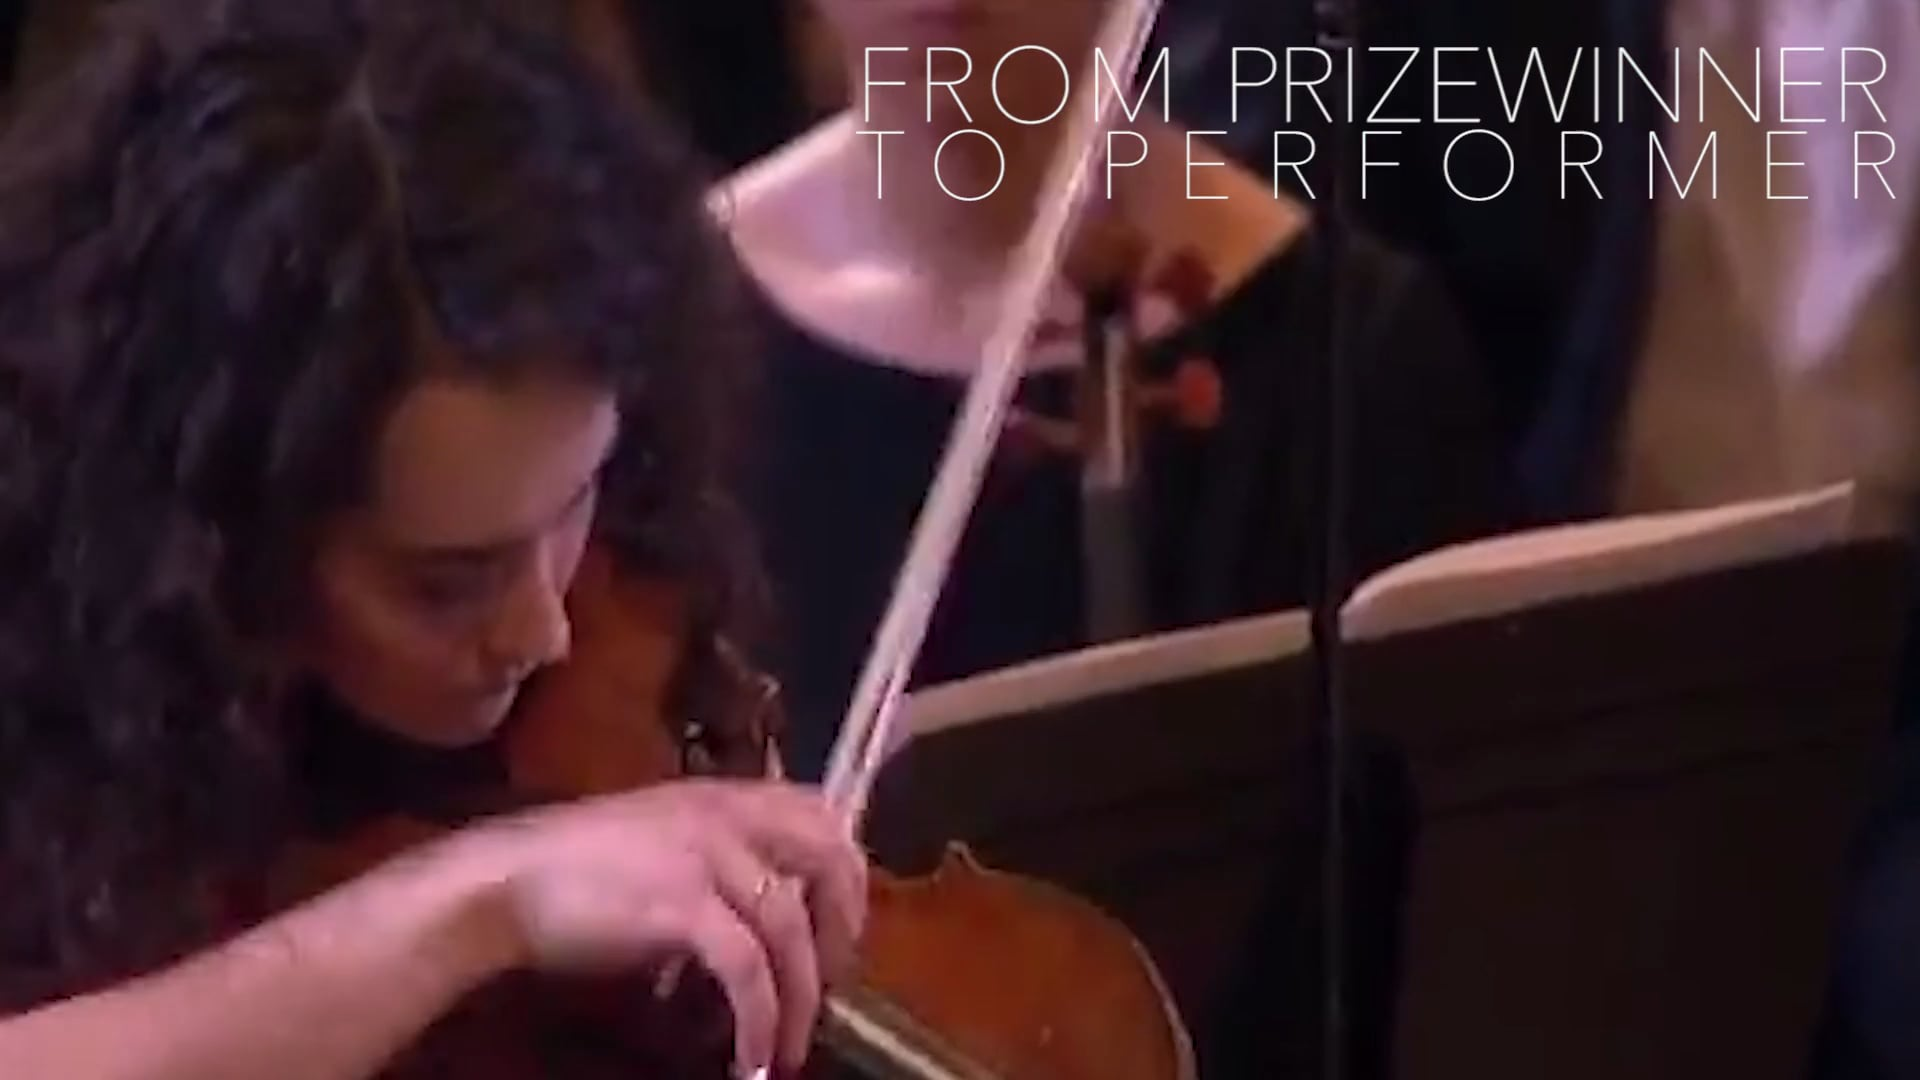 From Prizewinner to Performer